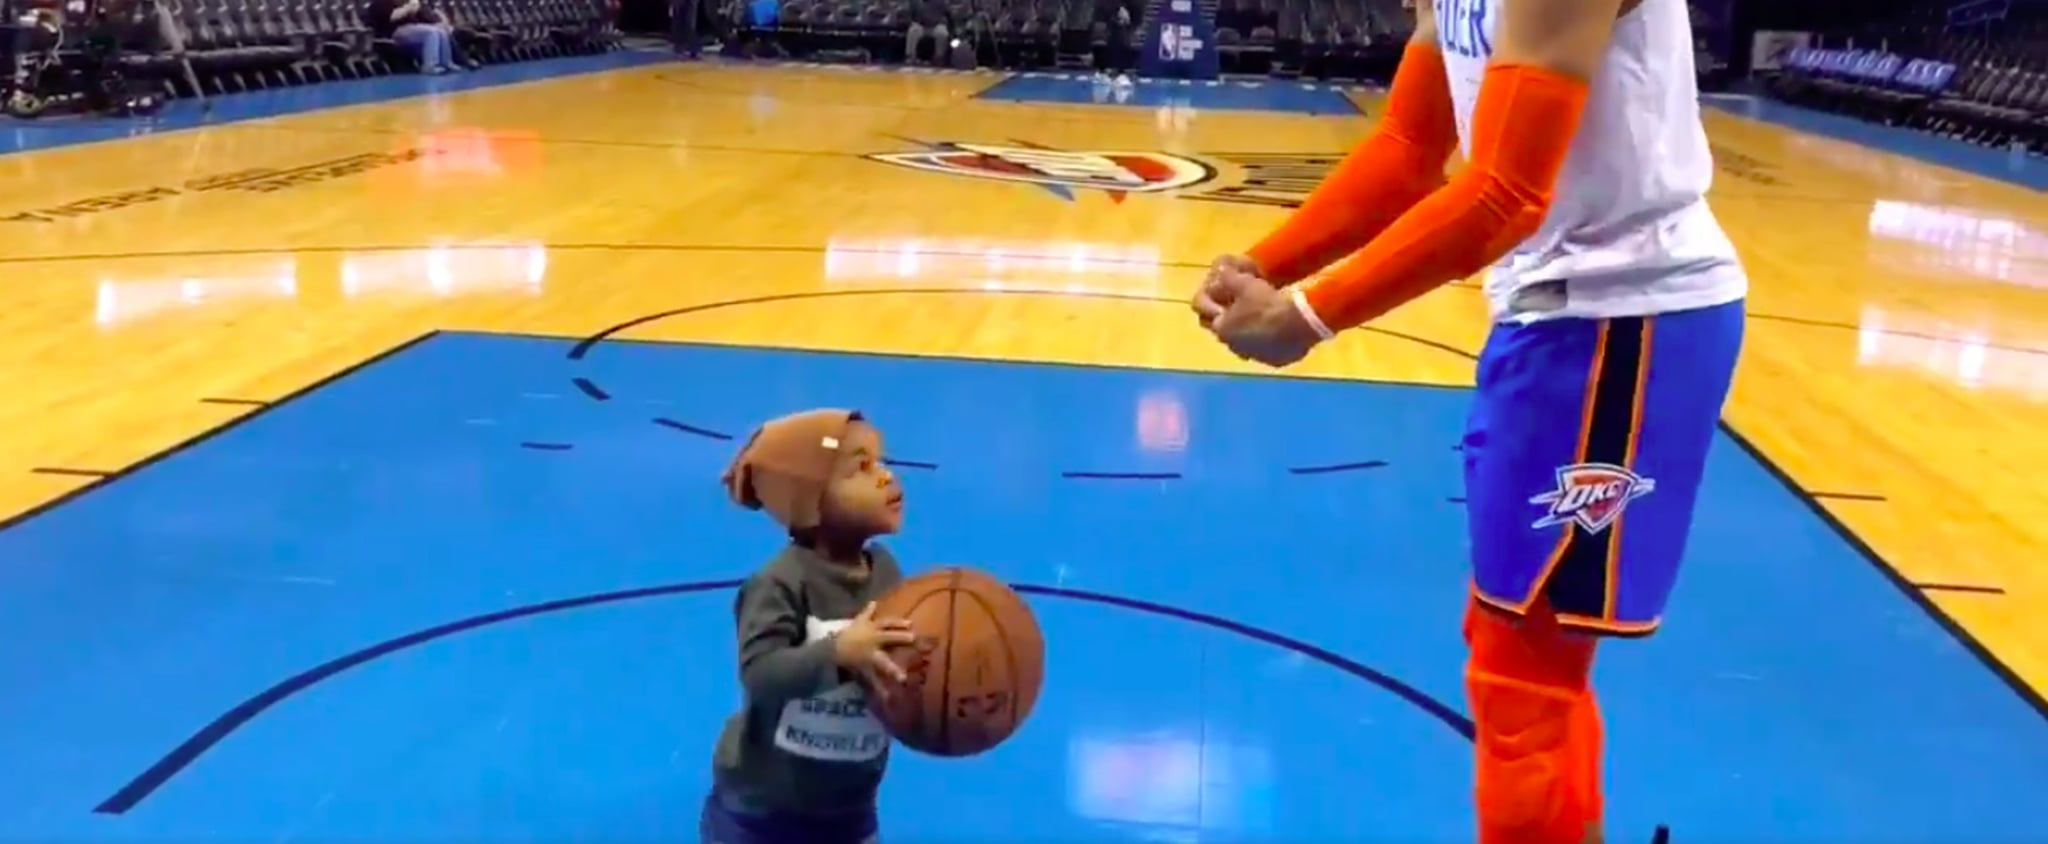 Russell Westbrook Warming Up With Son January 2019 Video